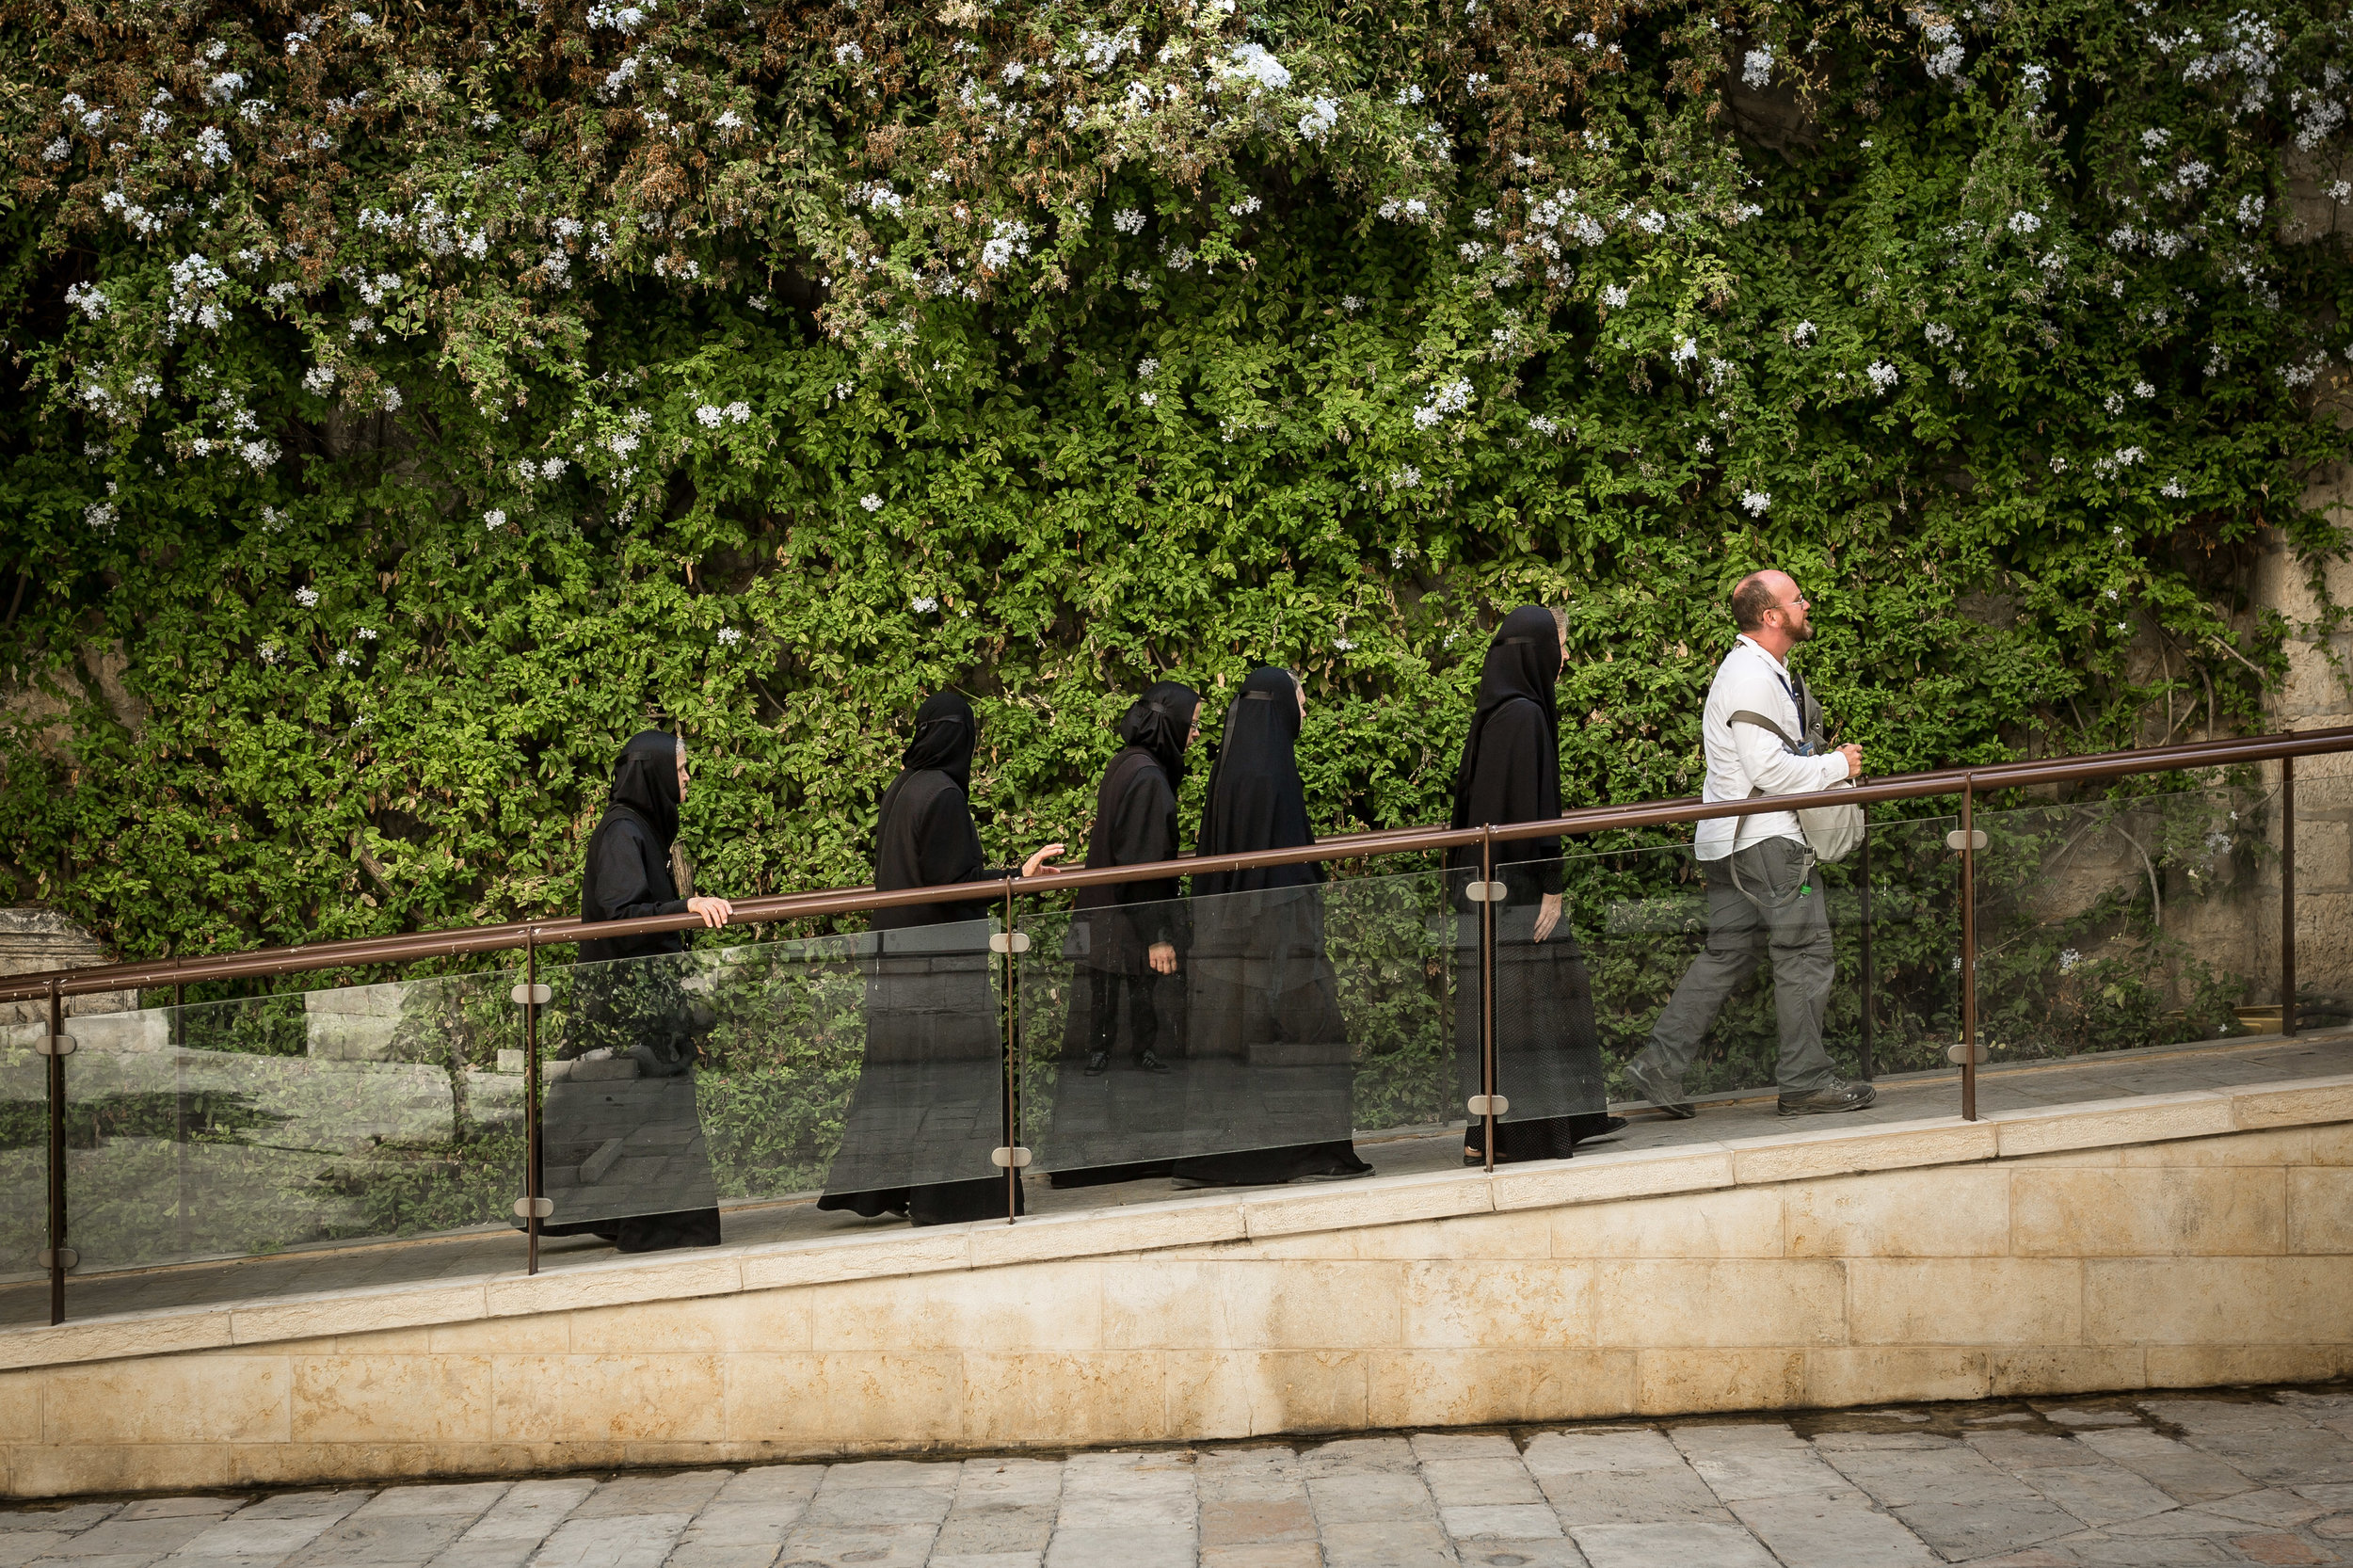 Nuns and a pilgrim seen near the first station of the Via Dolorosa in Jerusalem's Old City. The circuitous route is believed by many to follow the path that Jesus walked, carrying his cross, on the way to his crucifixion.